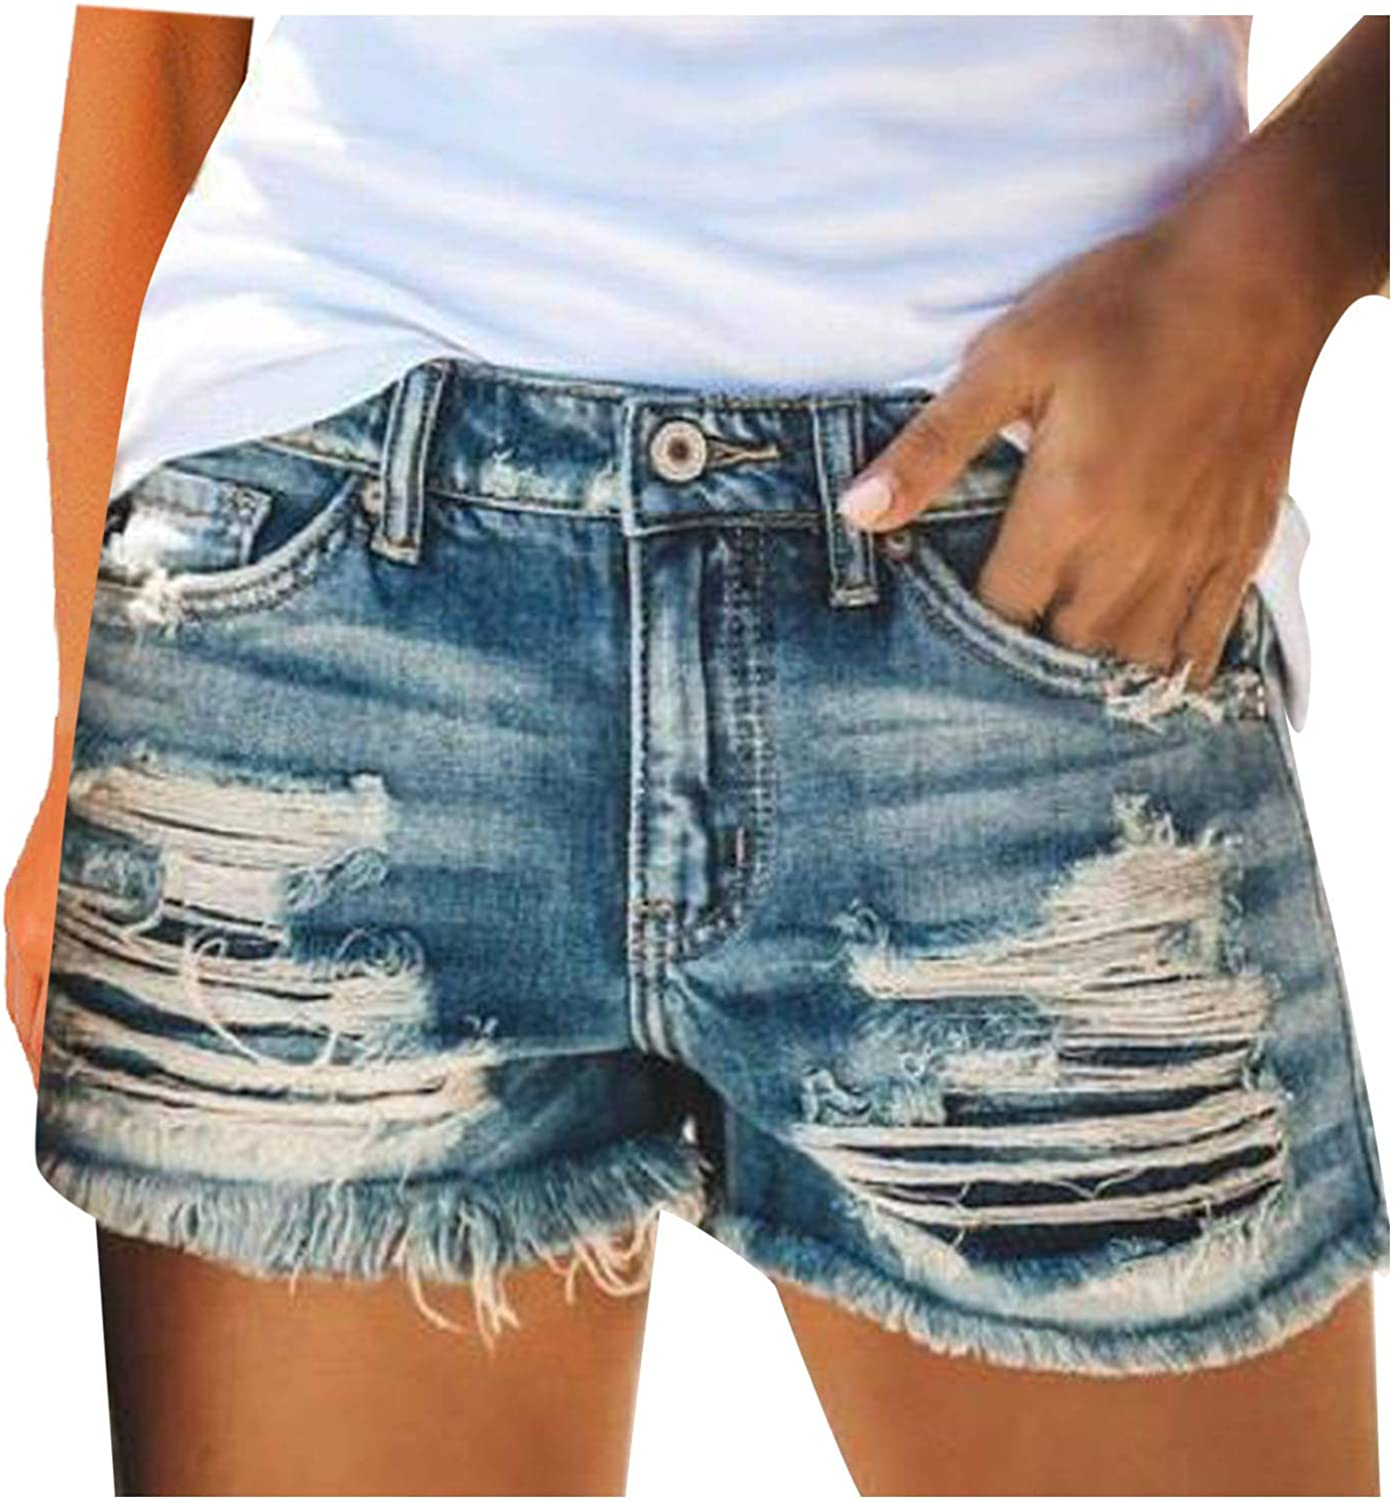 Denim Shorts for Women Distressed Stretchy Fr Credence Ripped gift Jean